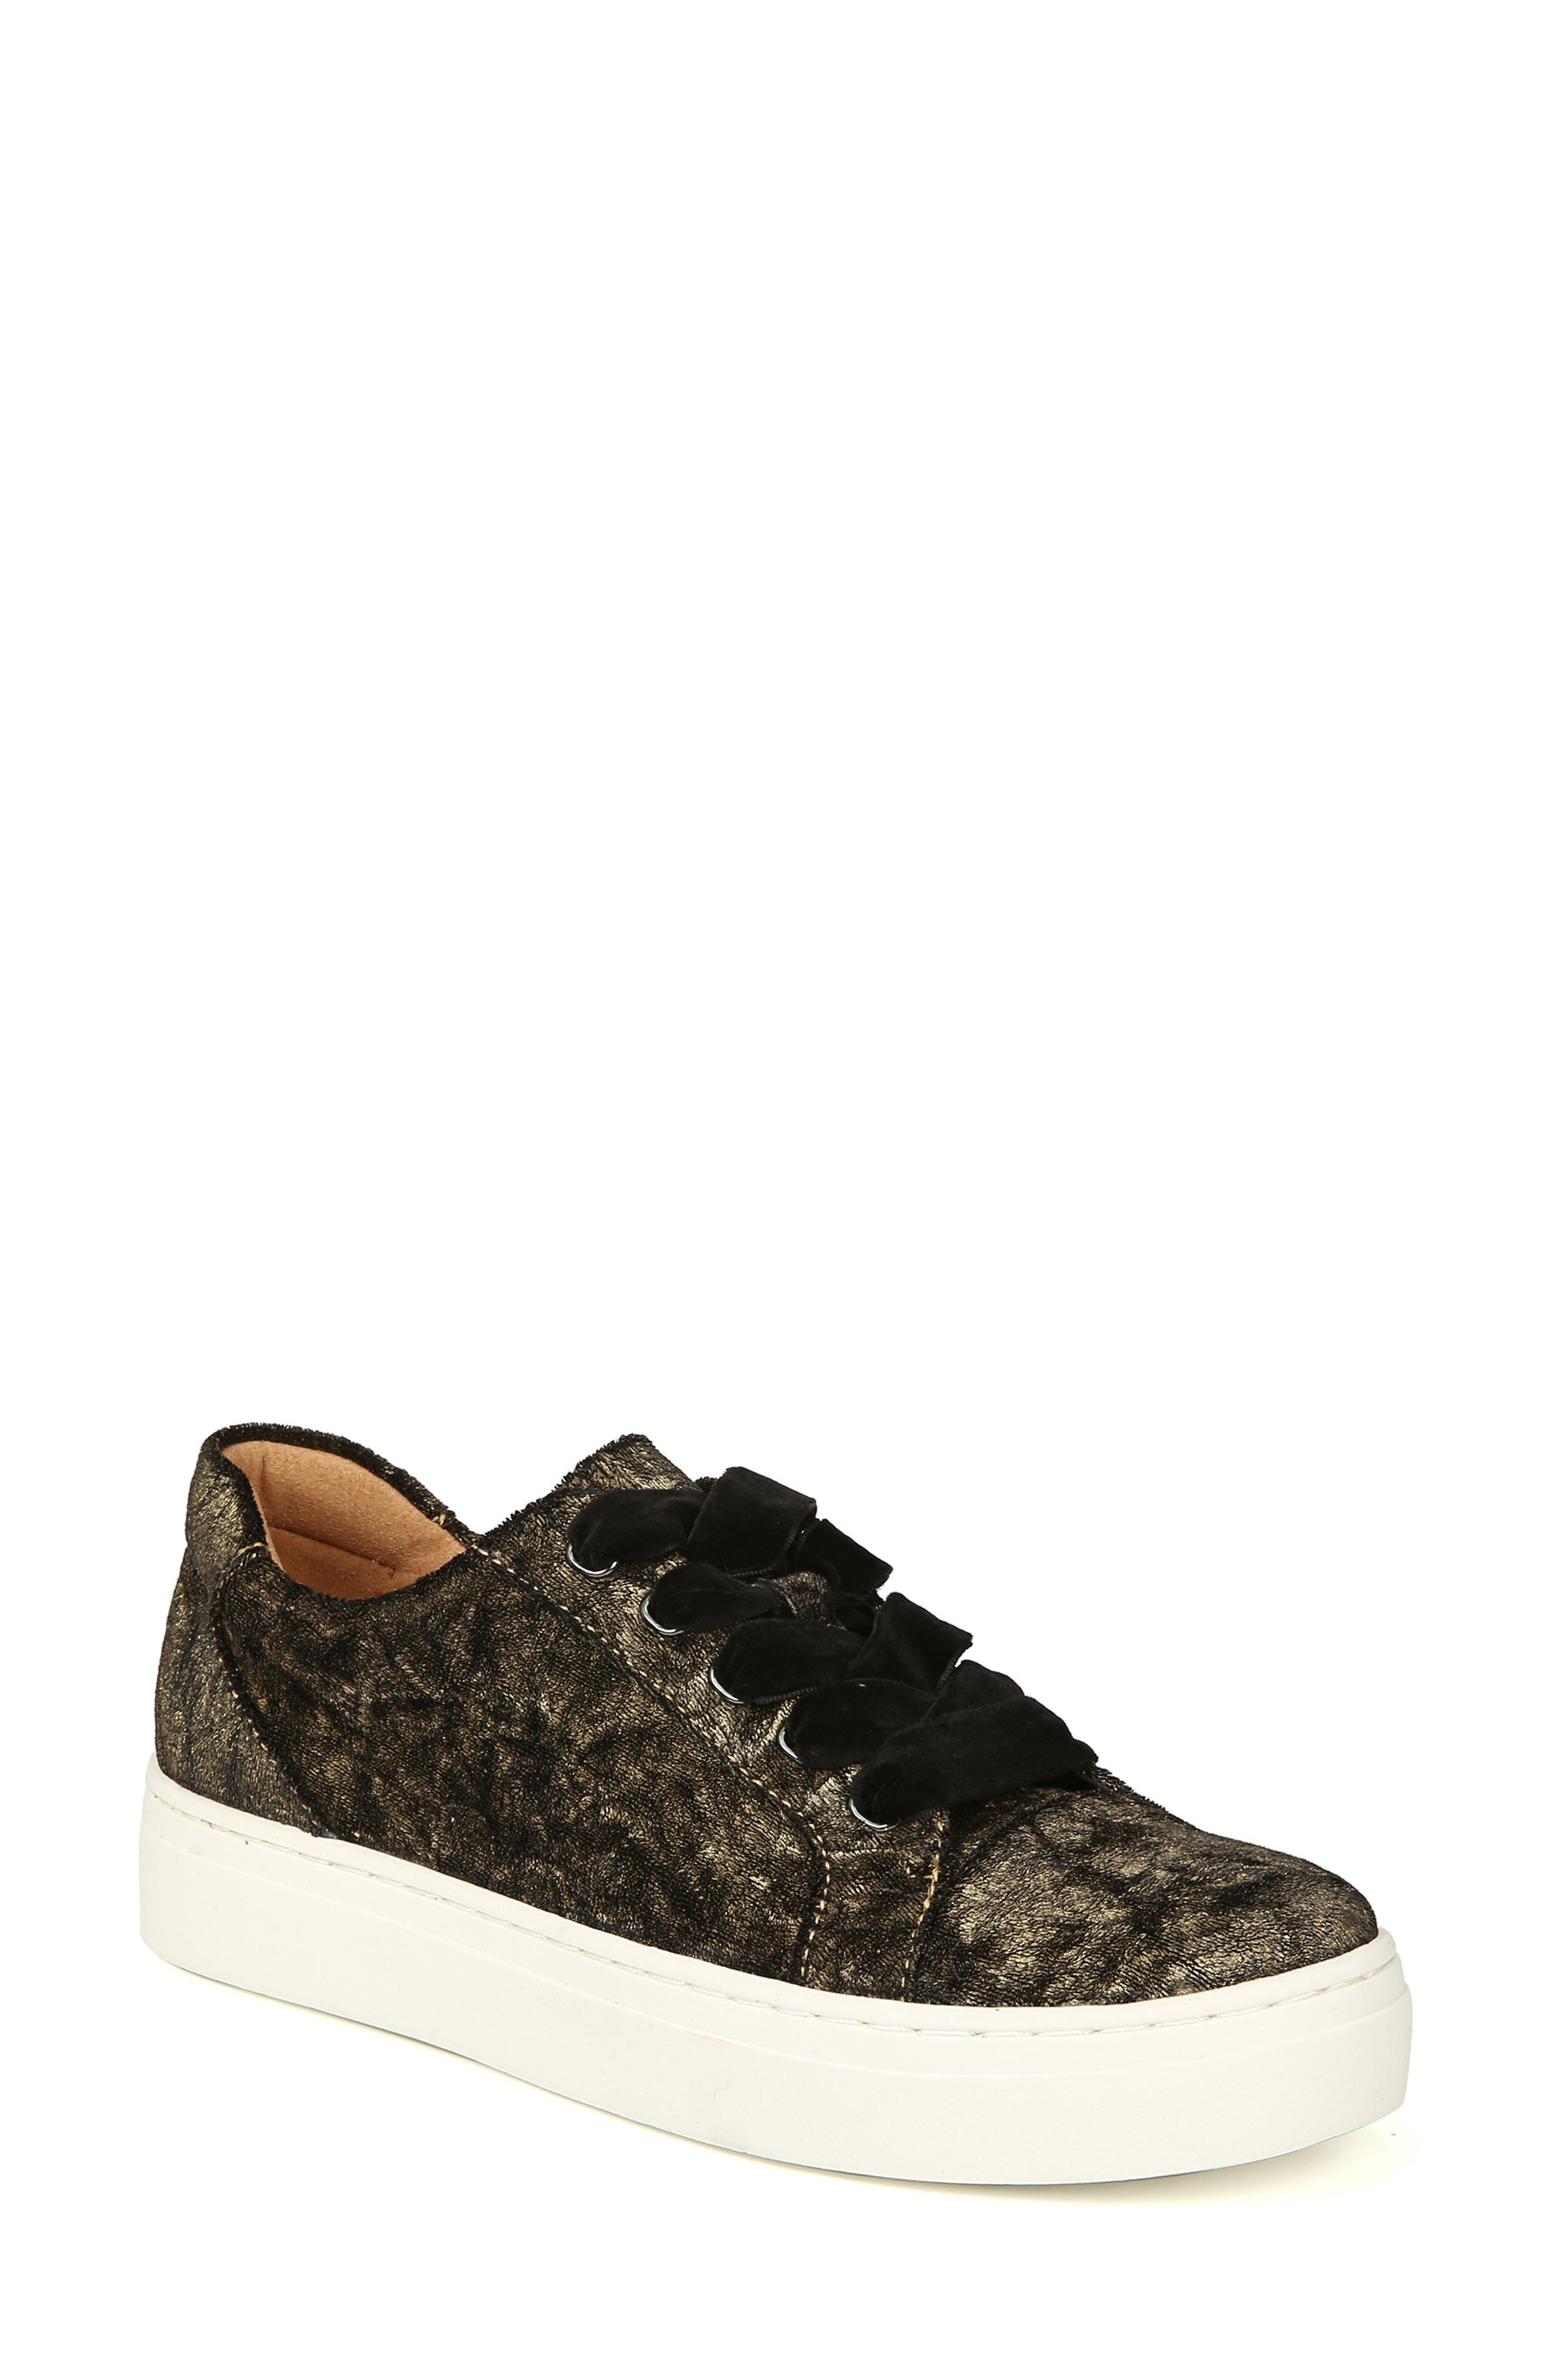 Naturalizer Cairo Sneaker- Metallic